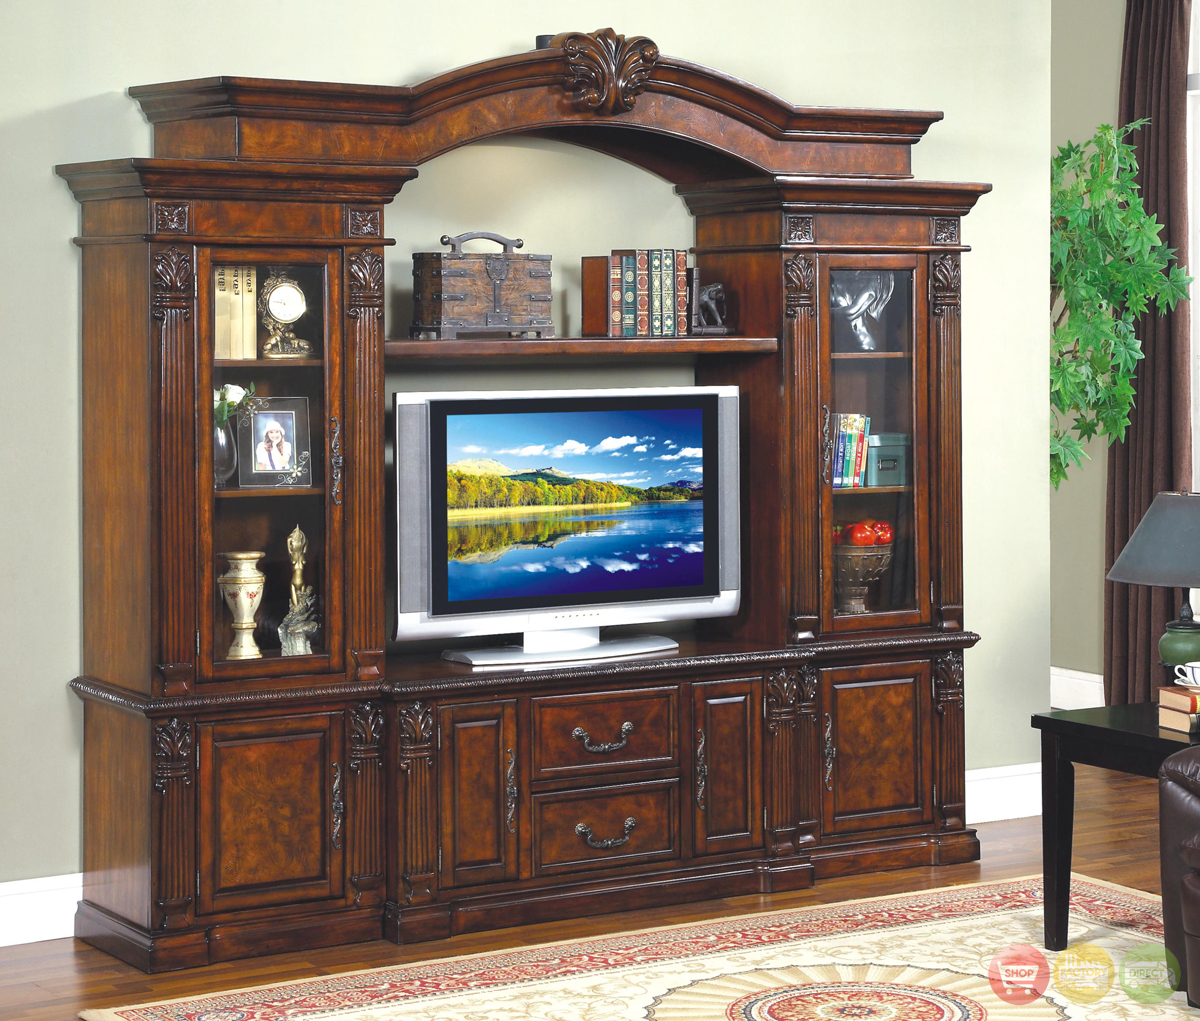 Renaissance traditional entertainment center wall unit for Traditional wall units